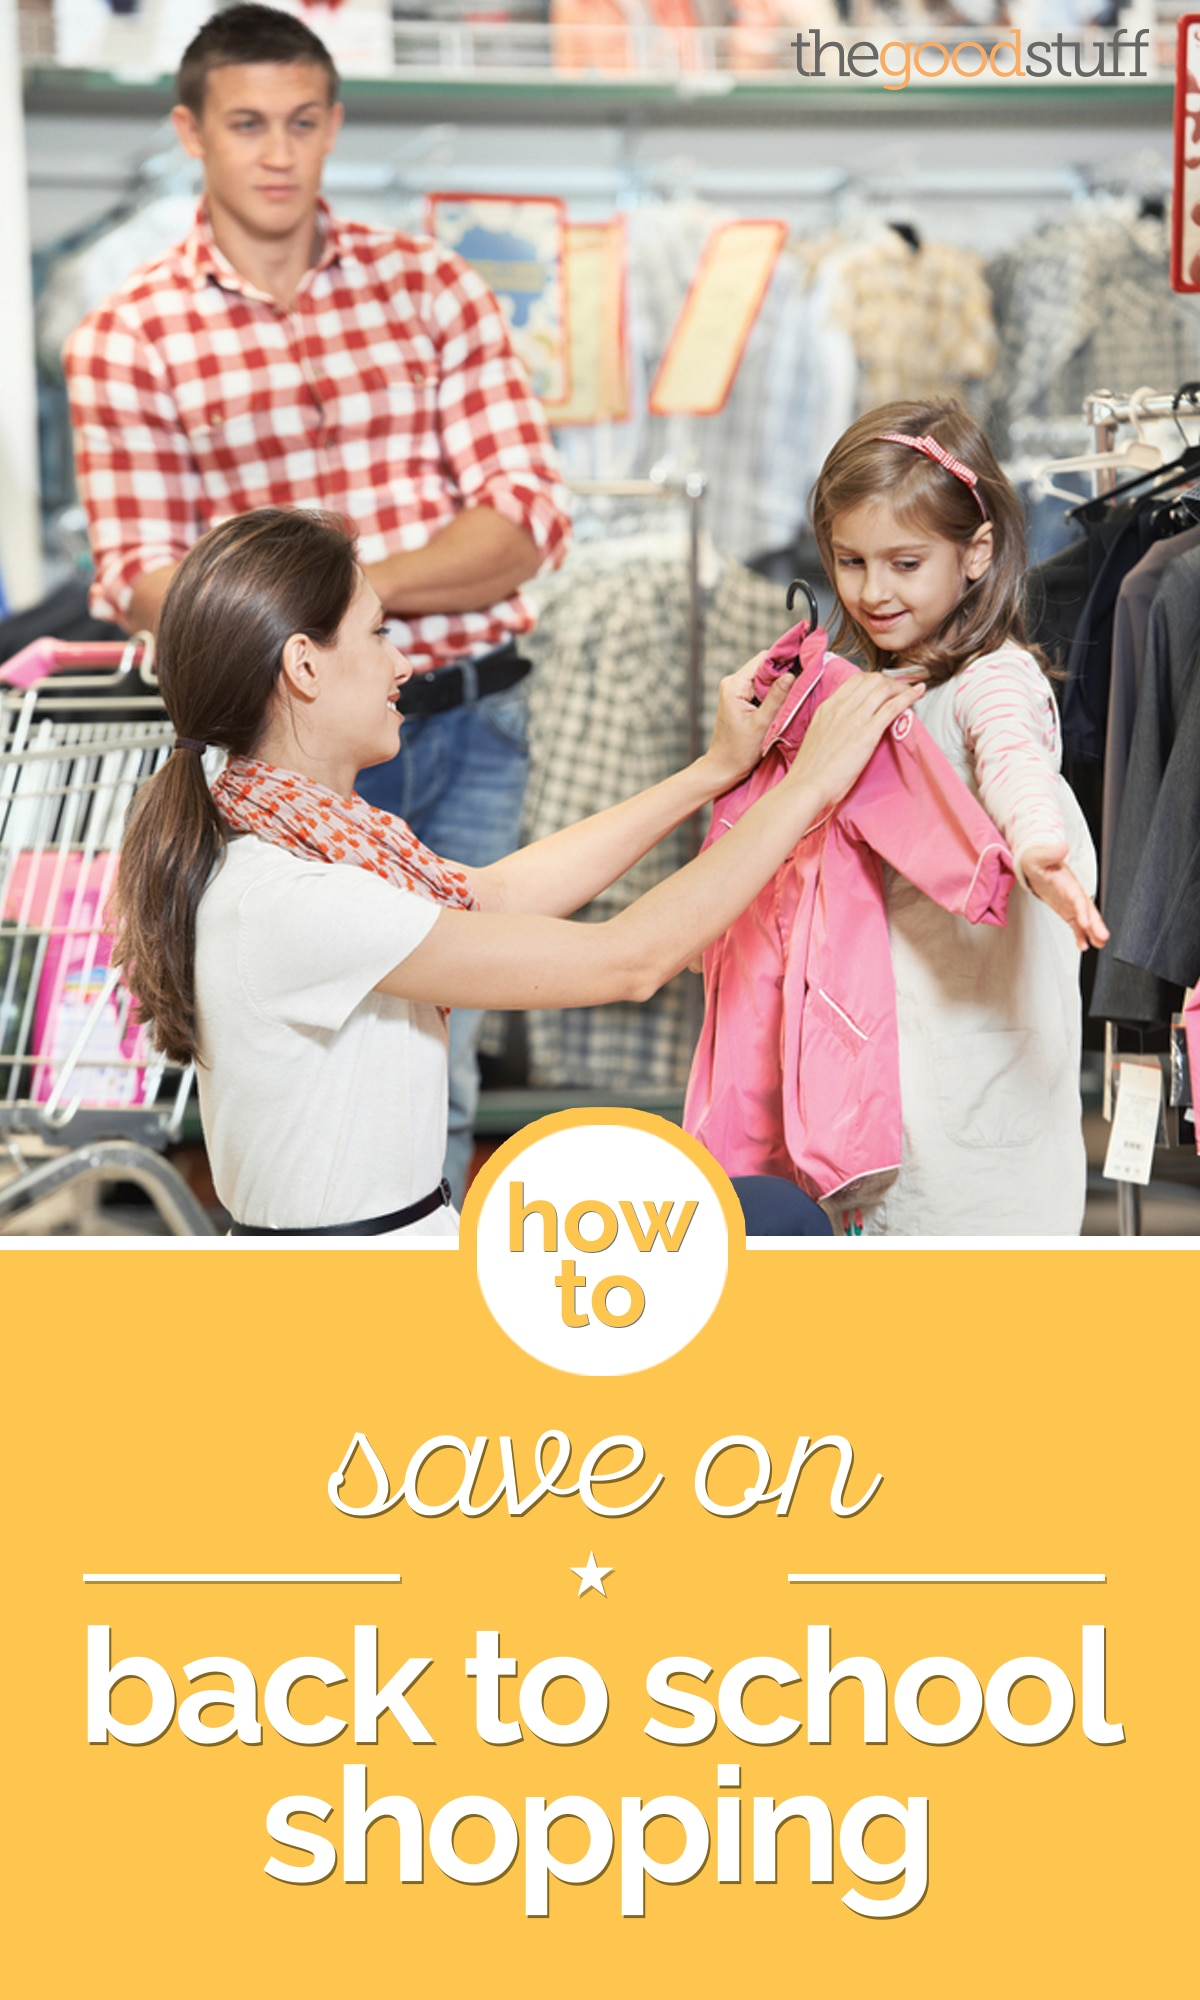 How to Save on Back to School Shopping |thegoodstuff